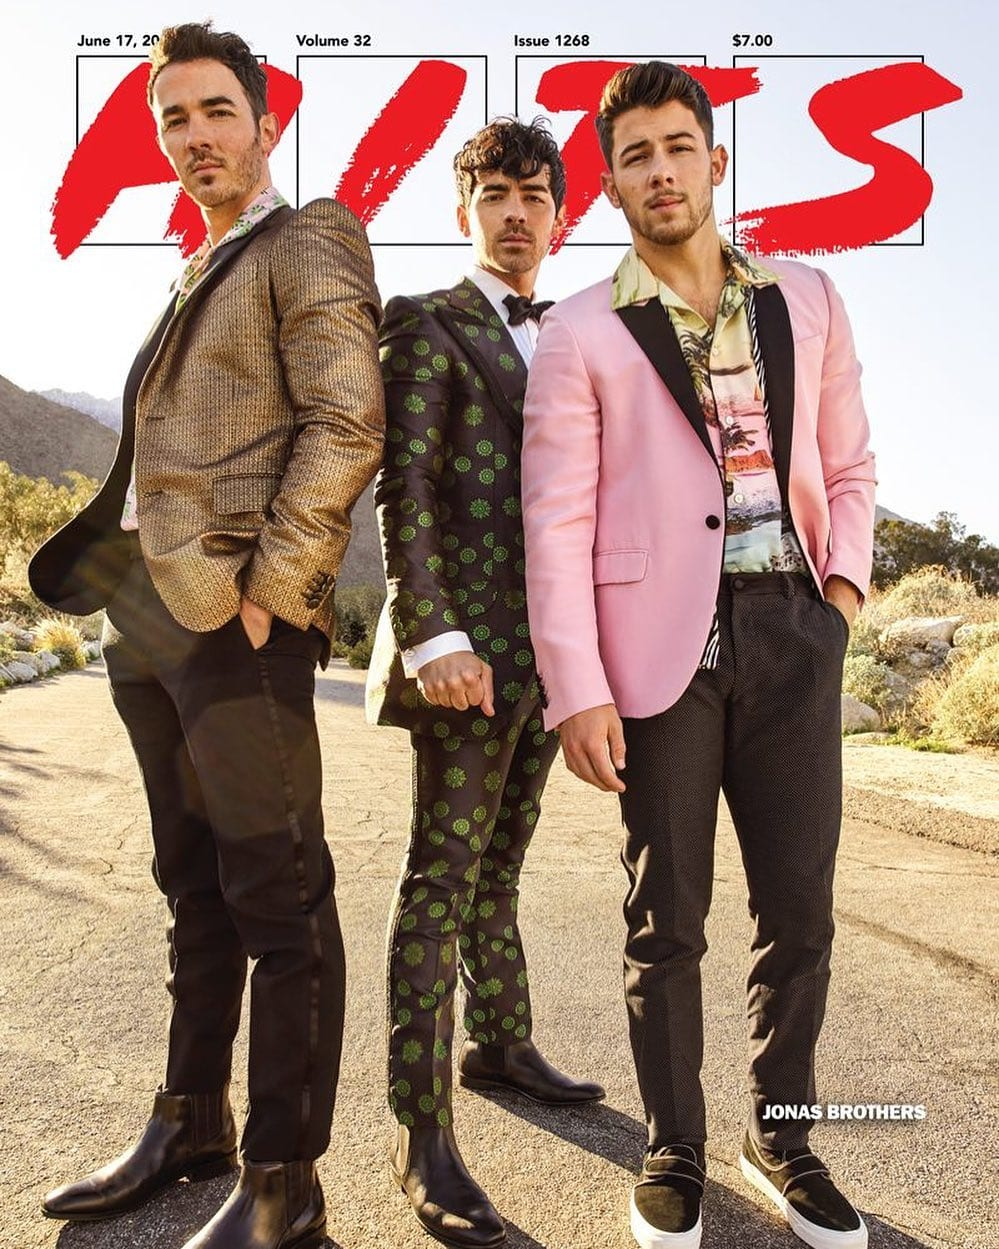 Jonas brothers net worth: Who is the richest in 2020